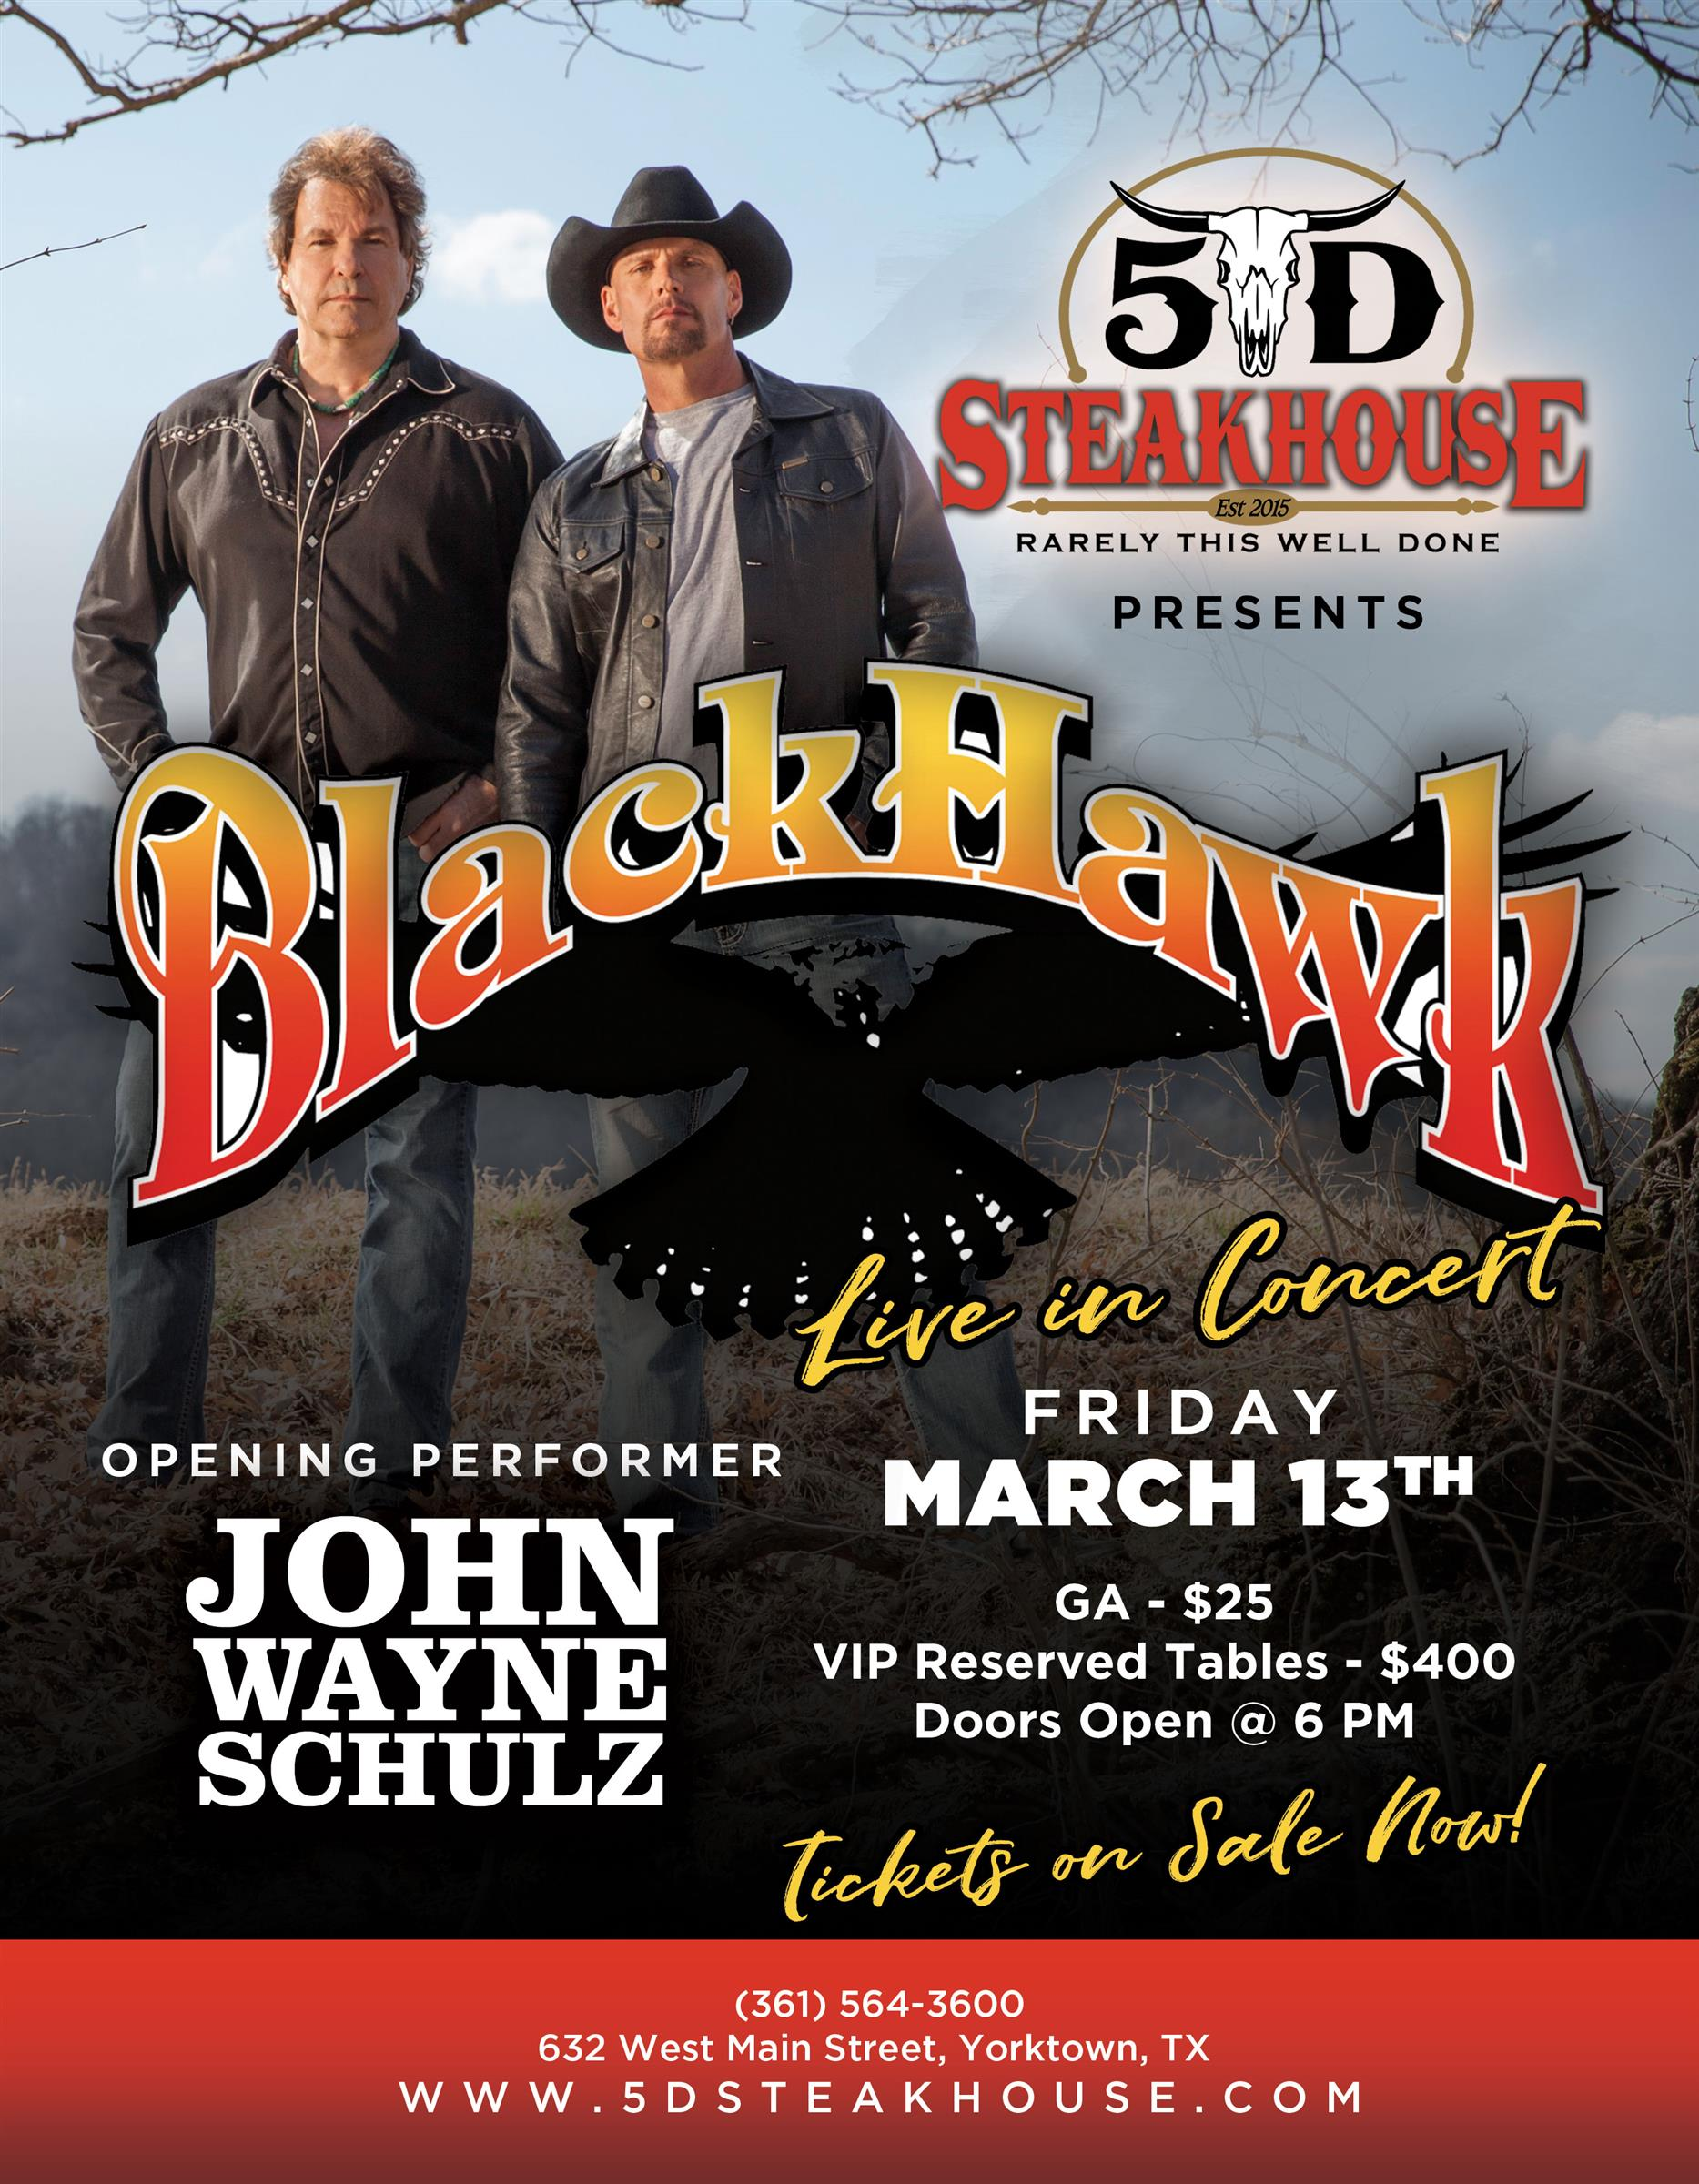 BlackHawk Live in Concert with John Wayne Schulz as the opening performer | Friday March 13th | GA $25 | Vip reserved tables $400 | Doors open @ 6 pm | Tickets on sale now